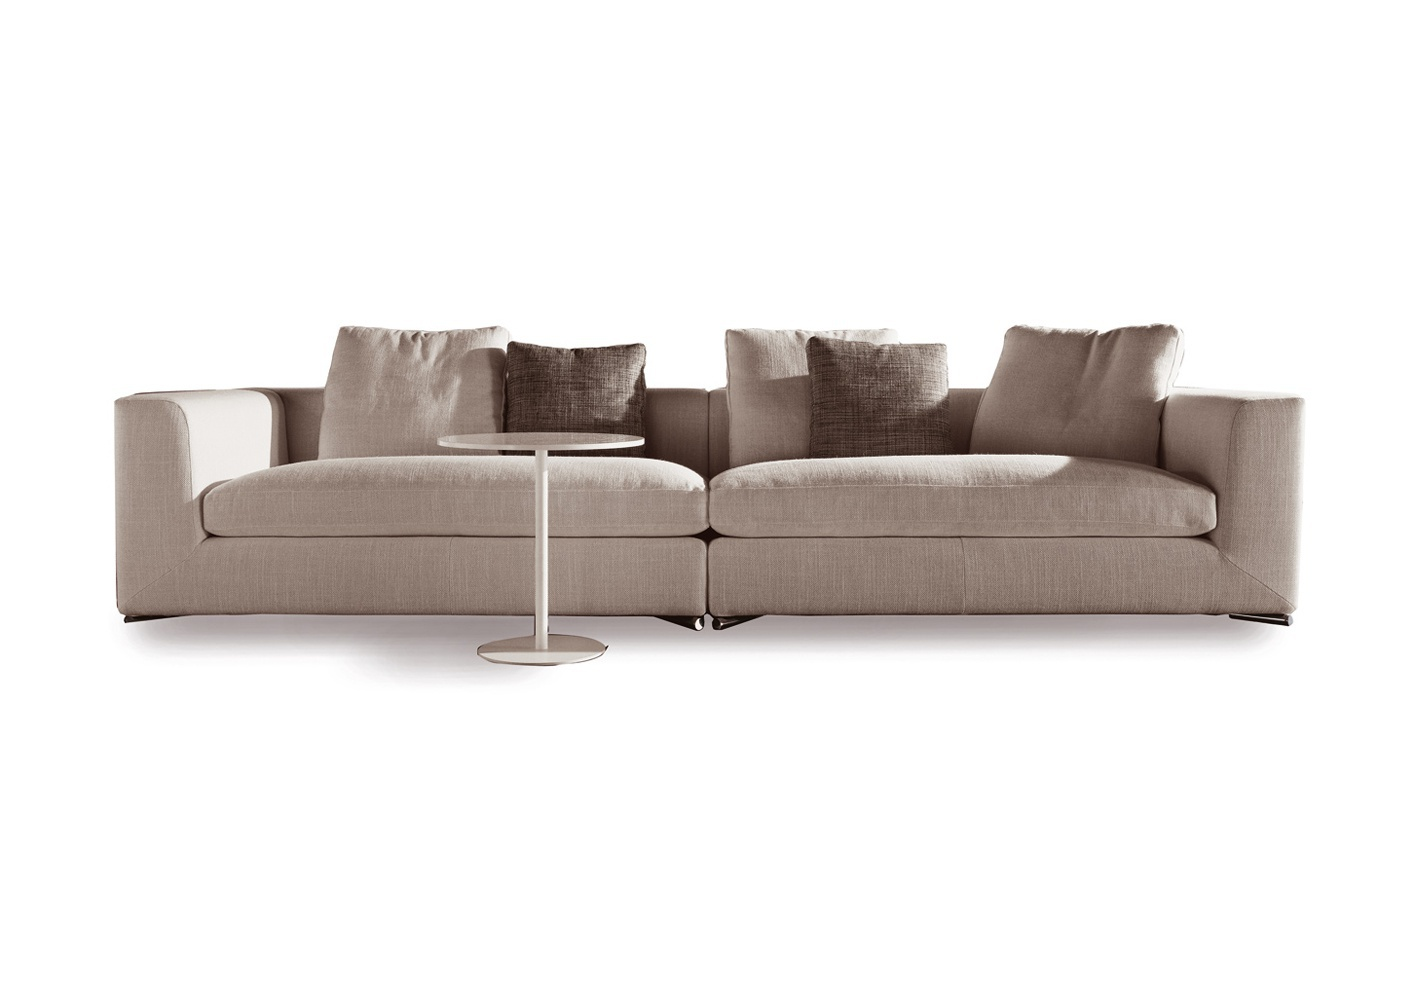 modular sofa matisse modern minotti luxury furniture mr. Black Bedroom Furniture Sets. Home Design Ideas